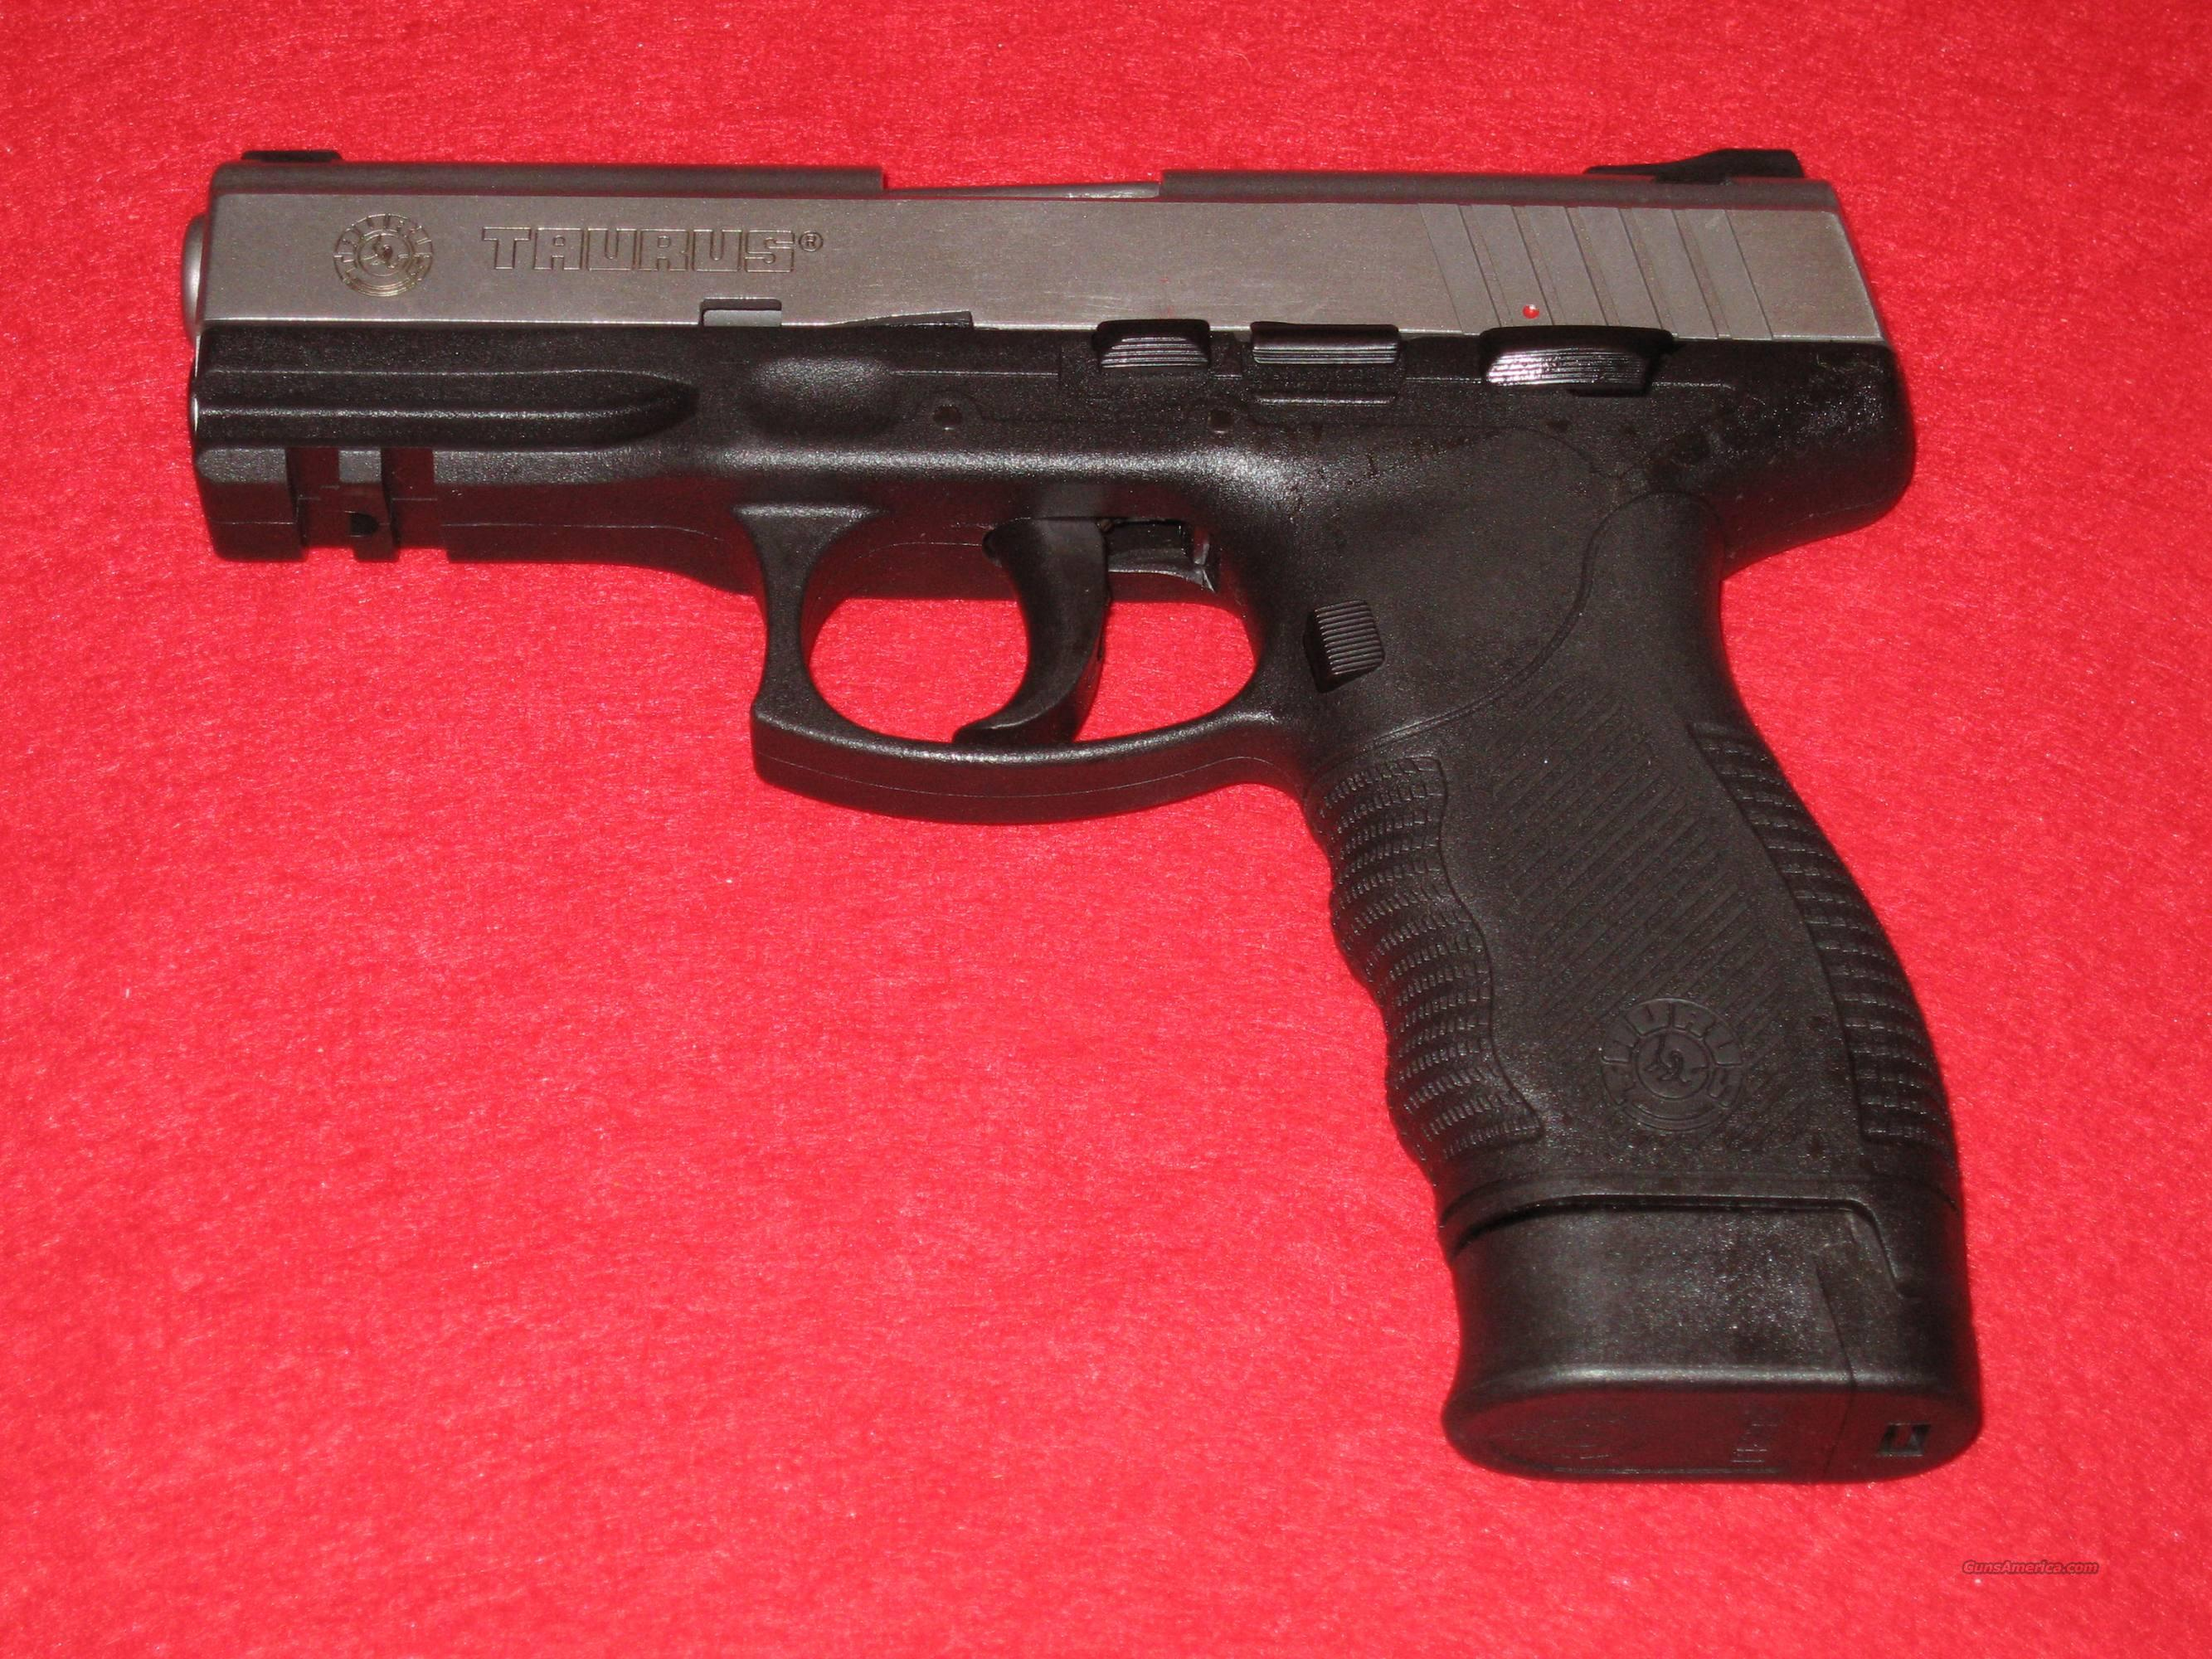 Taurus PT24\7 PRO in 9mm 17rd mag!! NEW!!! LAYAWAY!!!  Guns > Pistols > Taurus Pistols/Revolvers > Pistols > Polymer Frame